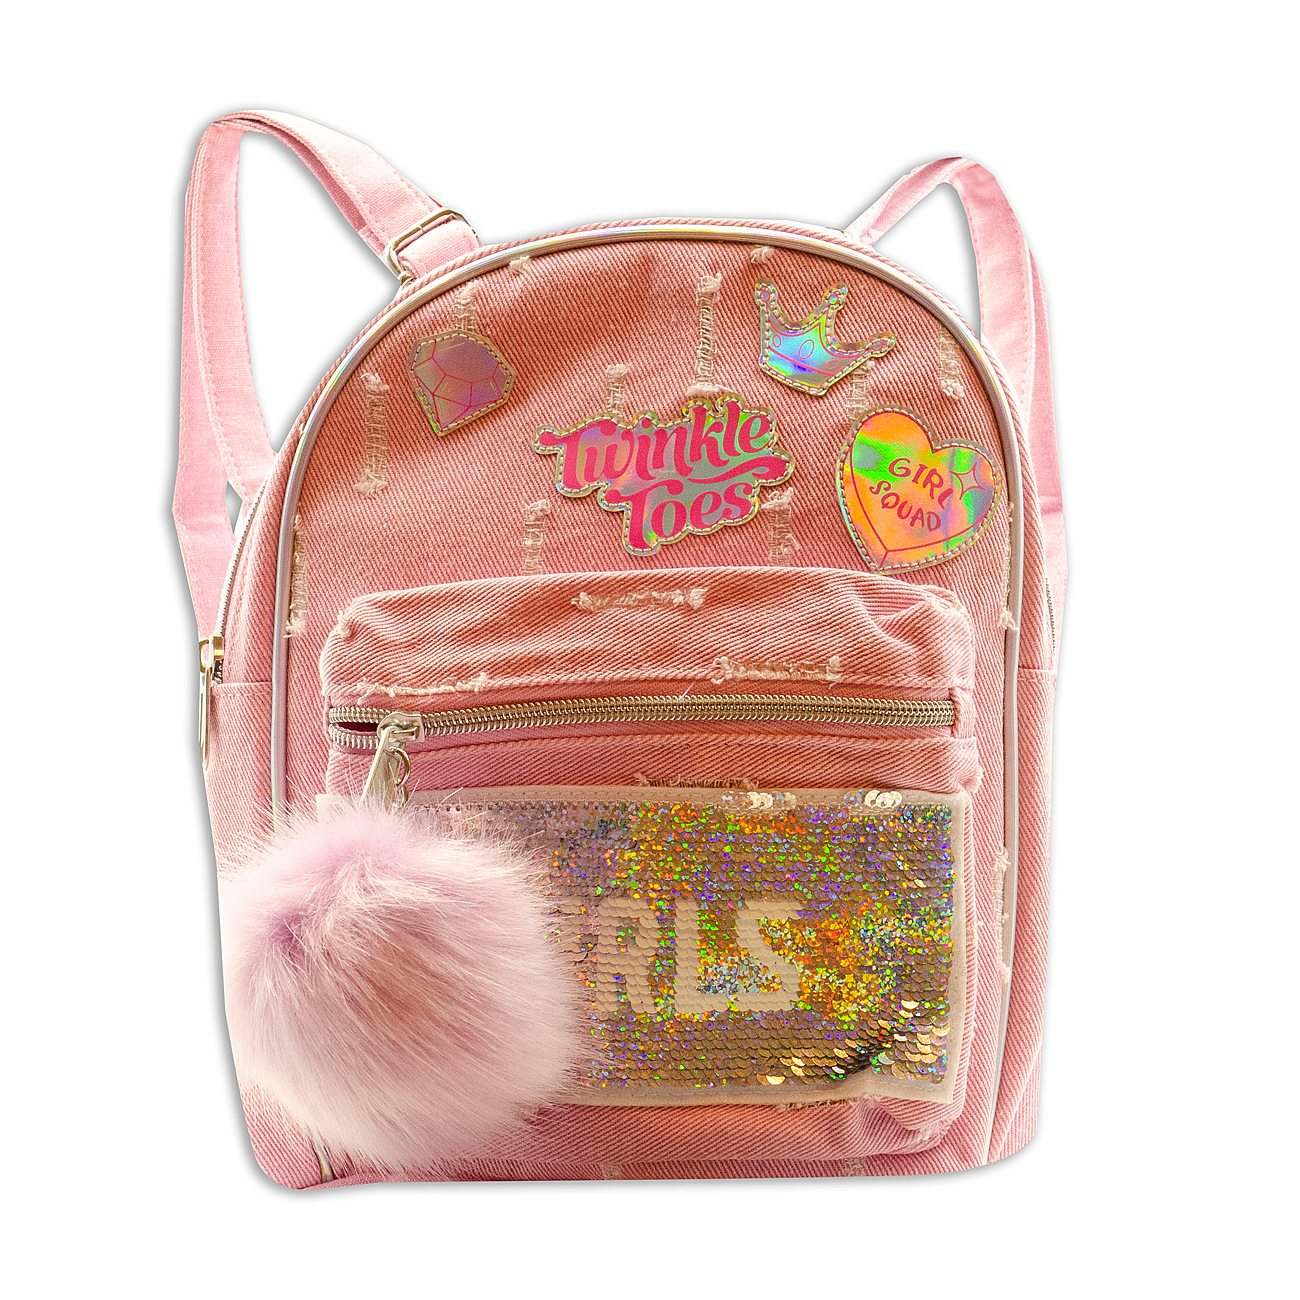 Twinkle Toes: Girls Rule Mini Backpack